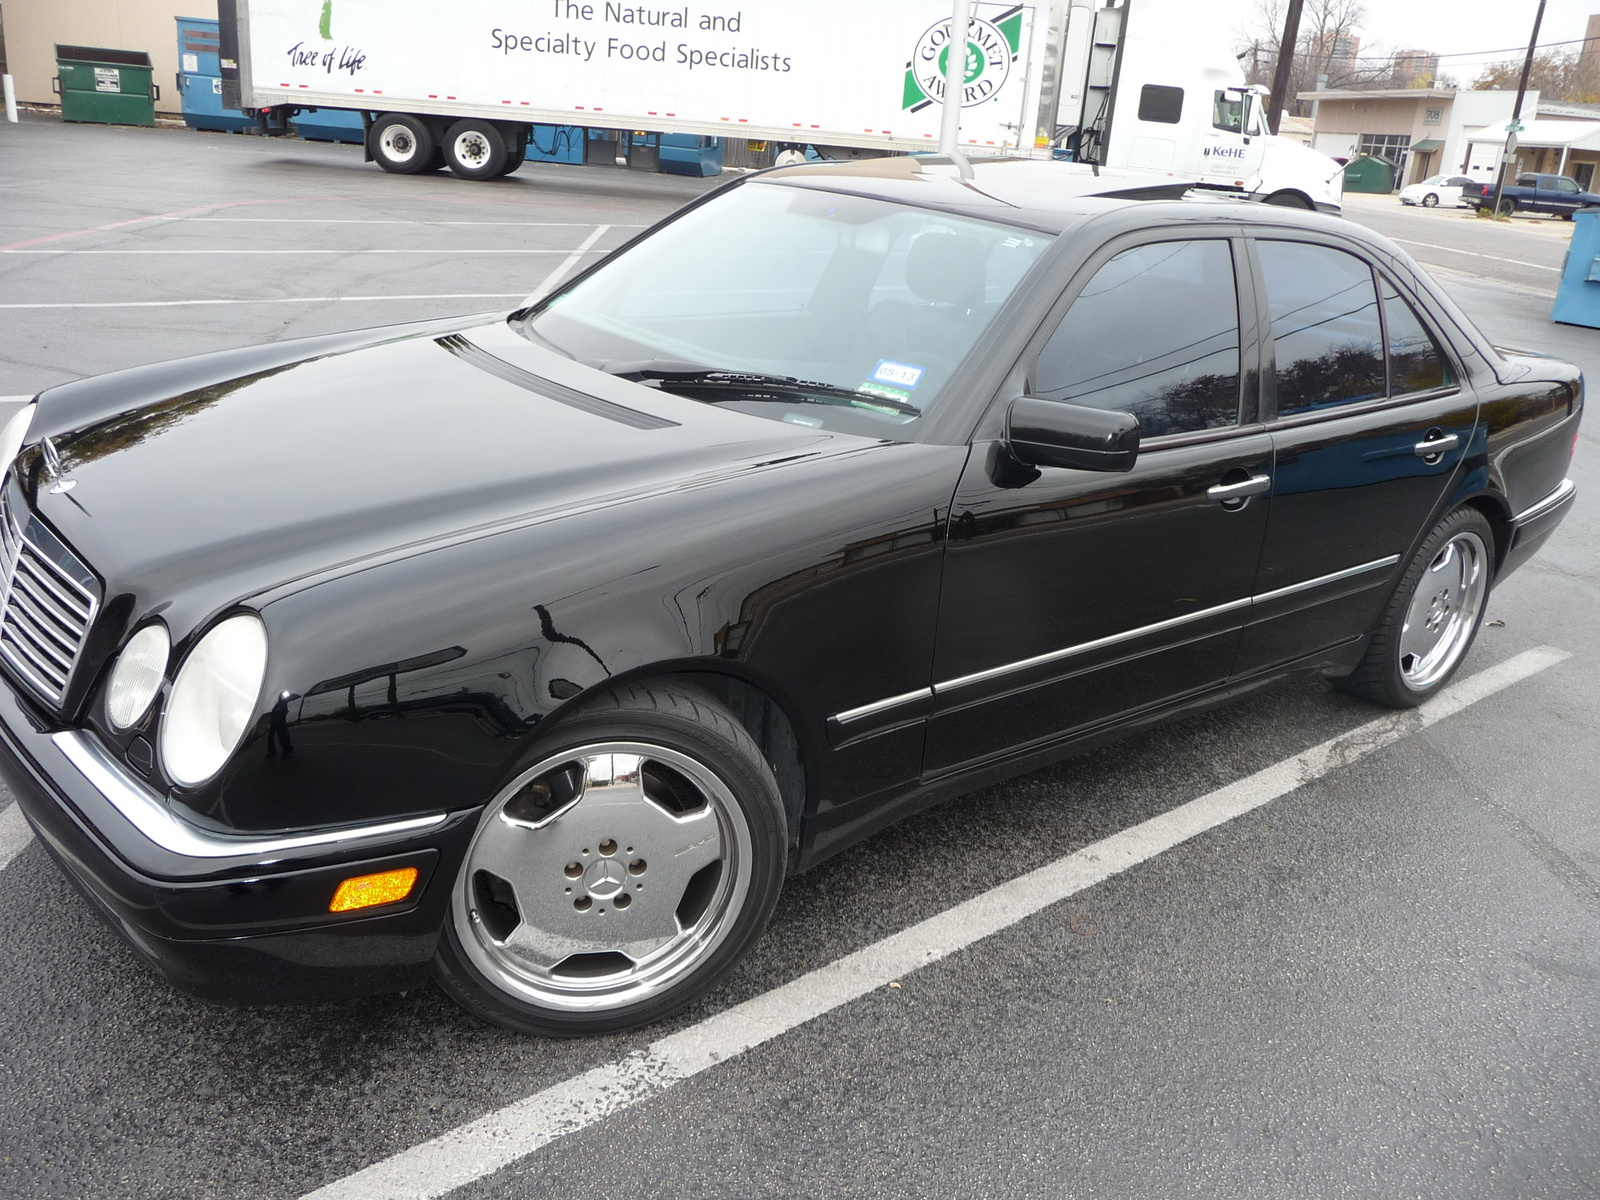 2005 Mercedes Benz E Class Pictures C6086 moreover Mercedes Benz 1997 E420 Fuel Pump Location furthermore 1998 Mercedes E320 Cooling Fan Relay Location also 2002 Mercedes Benz E Class Pictures C6140 additionally 2008 Mercedes Benz E Class Pictures C10410 pi36173294. on 1998 mercedes e320 interior